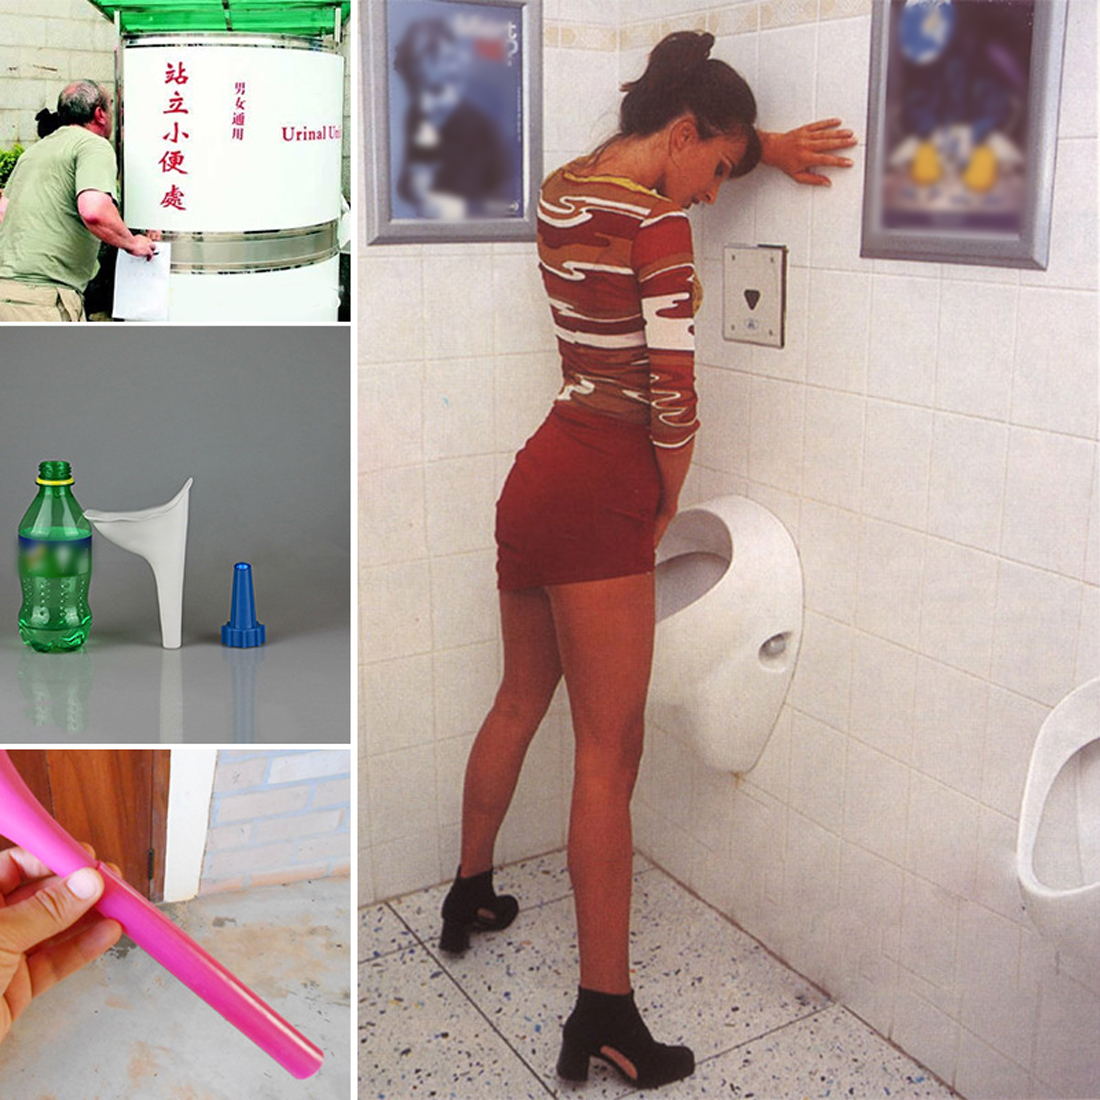 Urinal Outdoor Travel Portable Female Soft Urination Device Stand Up & Pee 2